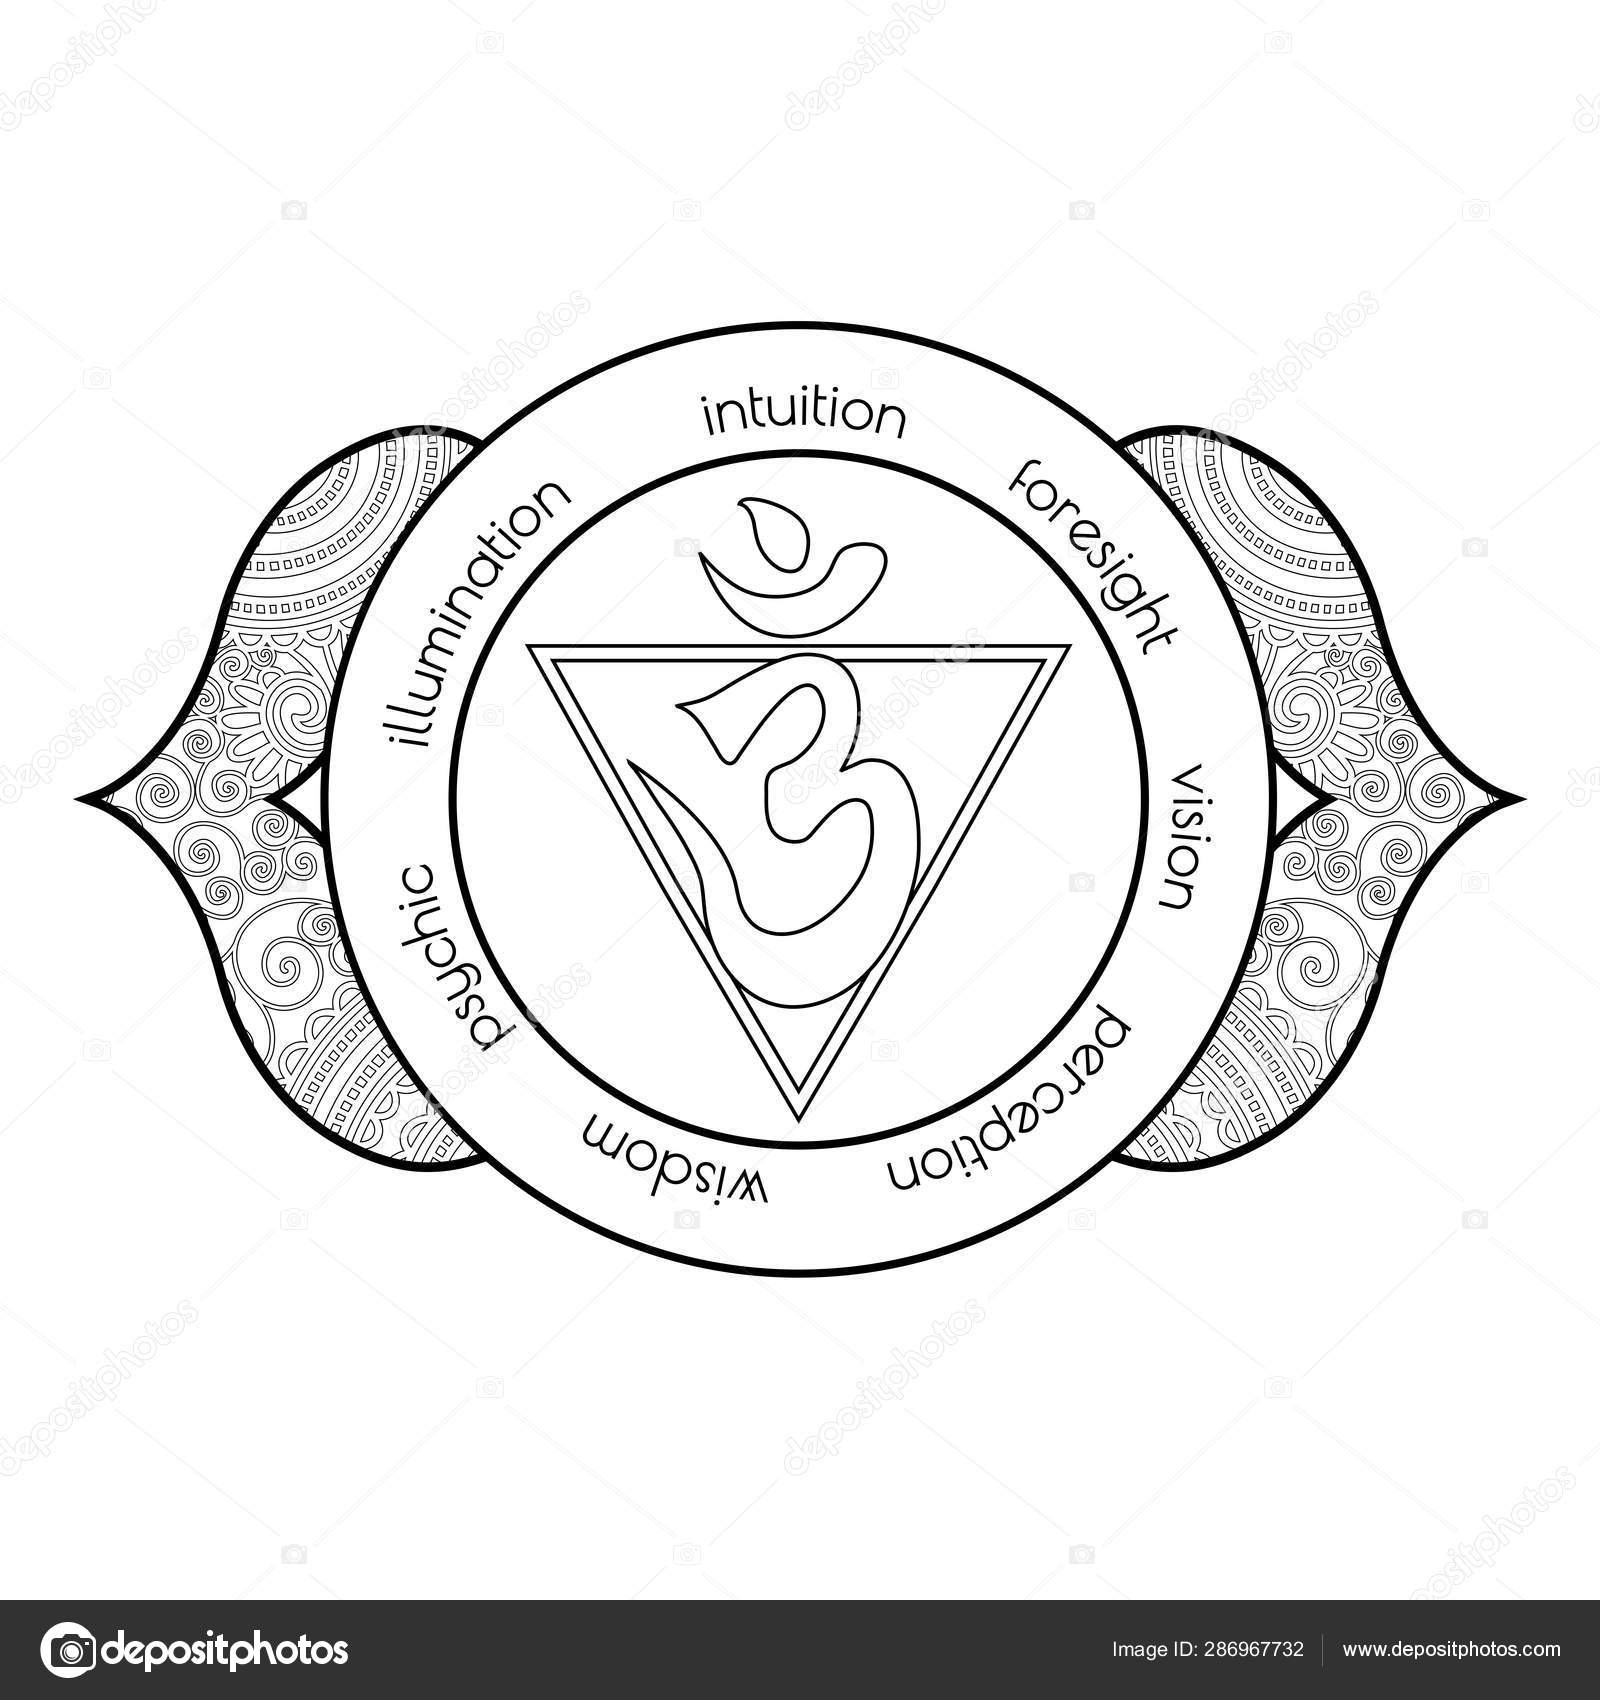 Third Eye Chakra Coloring Page Stock Photo C Smk0473 286967732